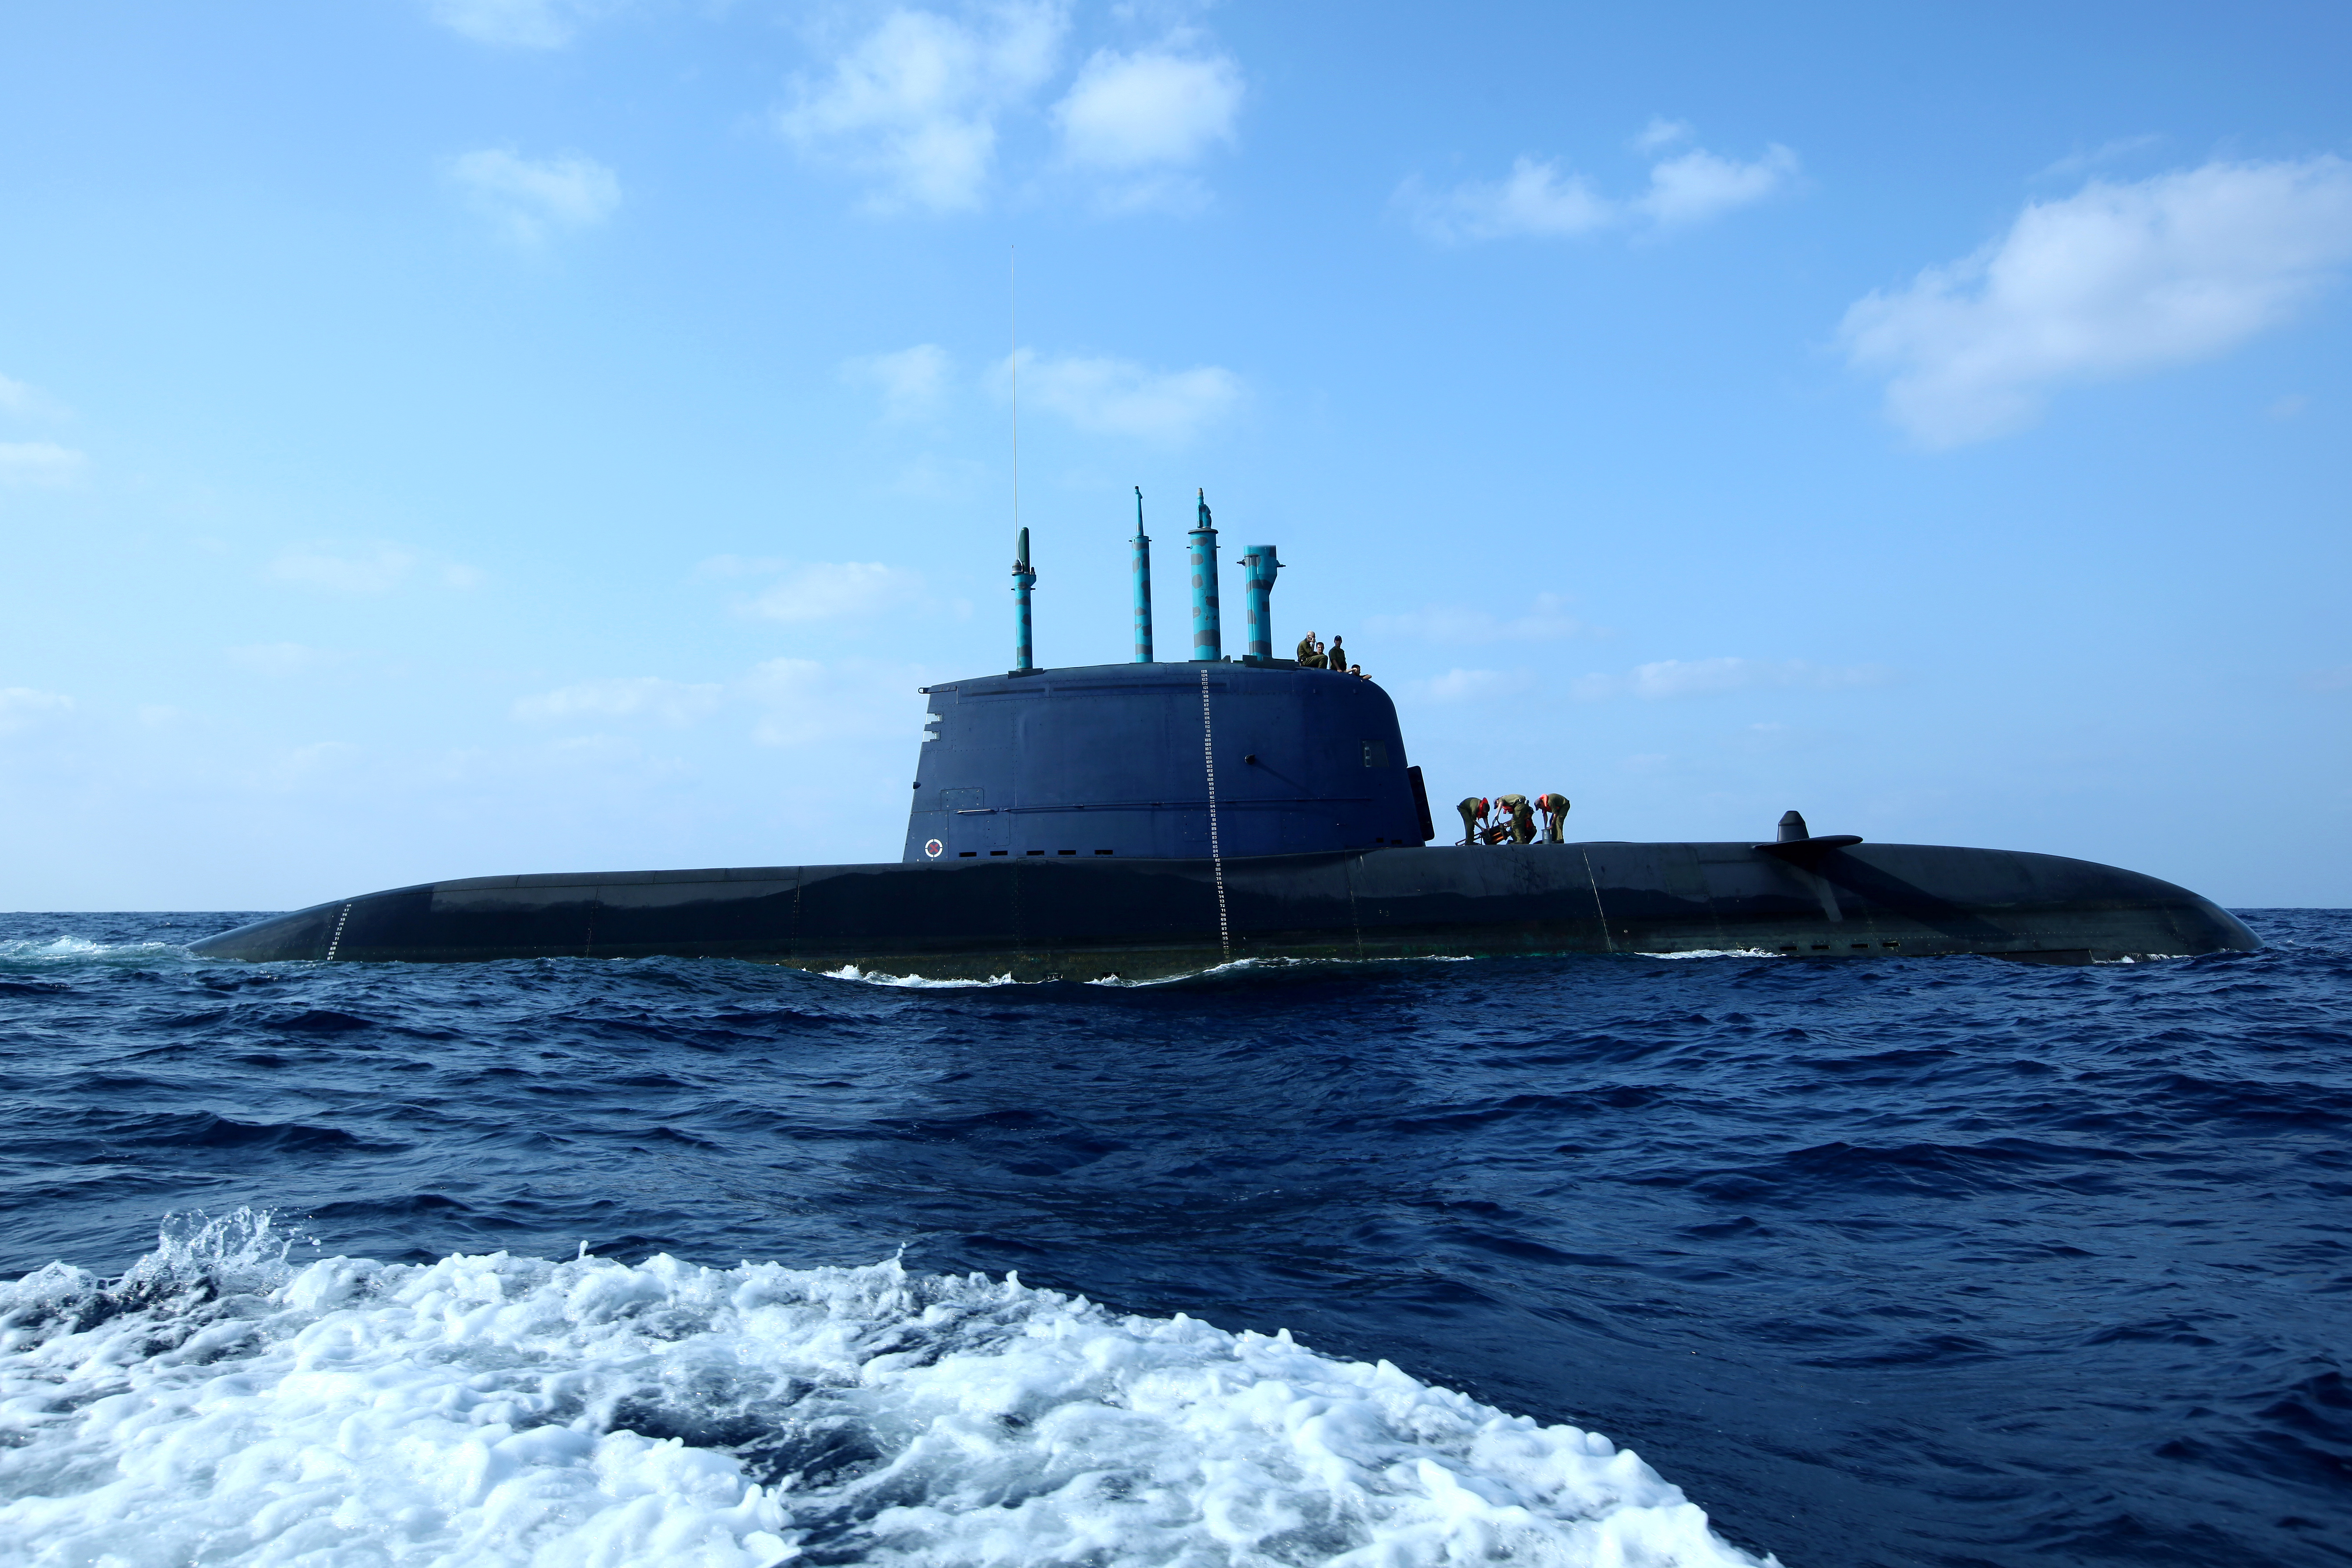 Germany's role in the Israeli Navy's developing submarine ...